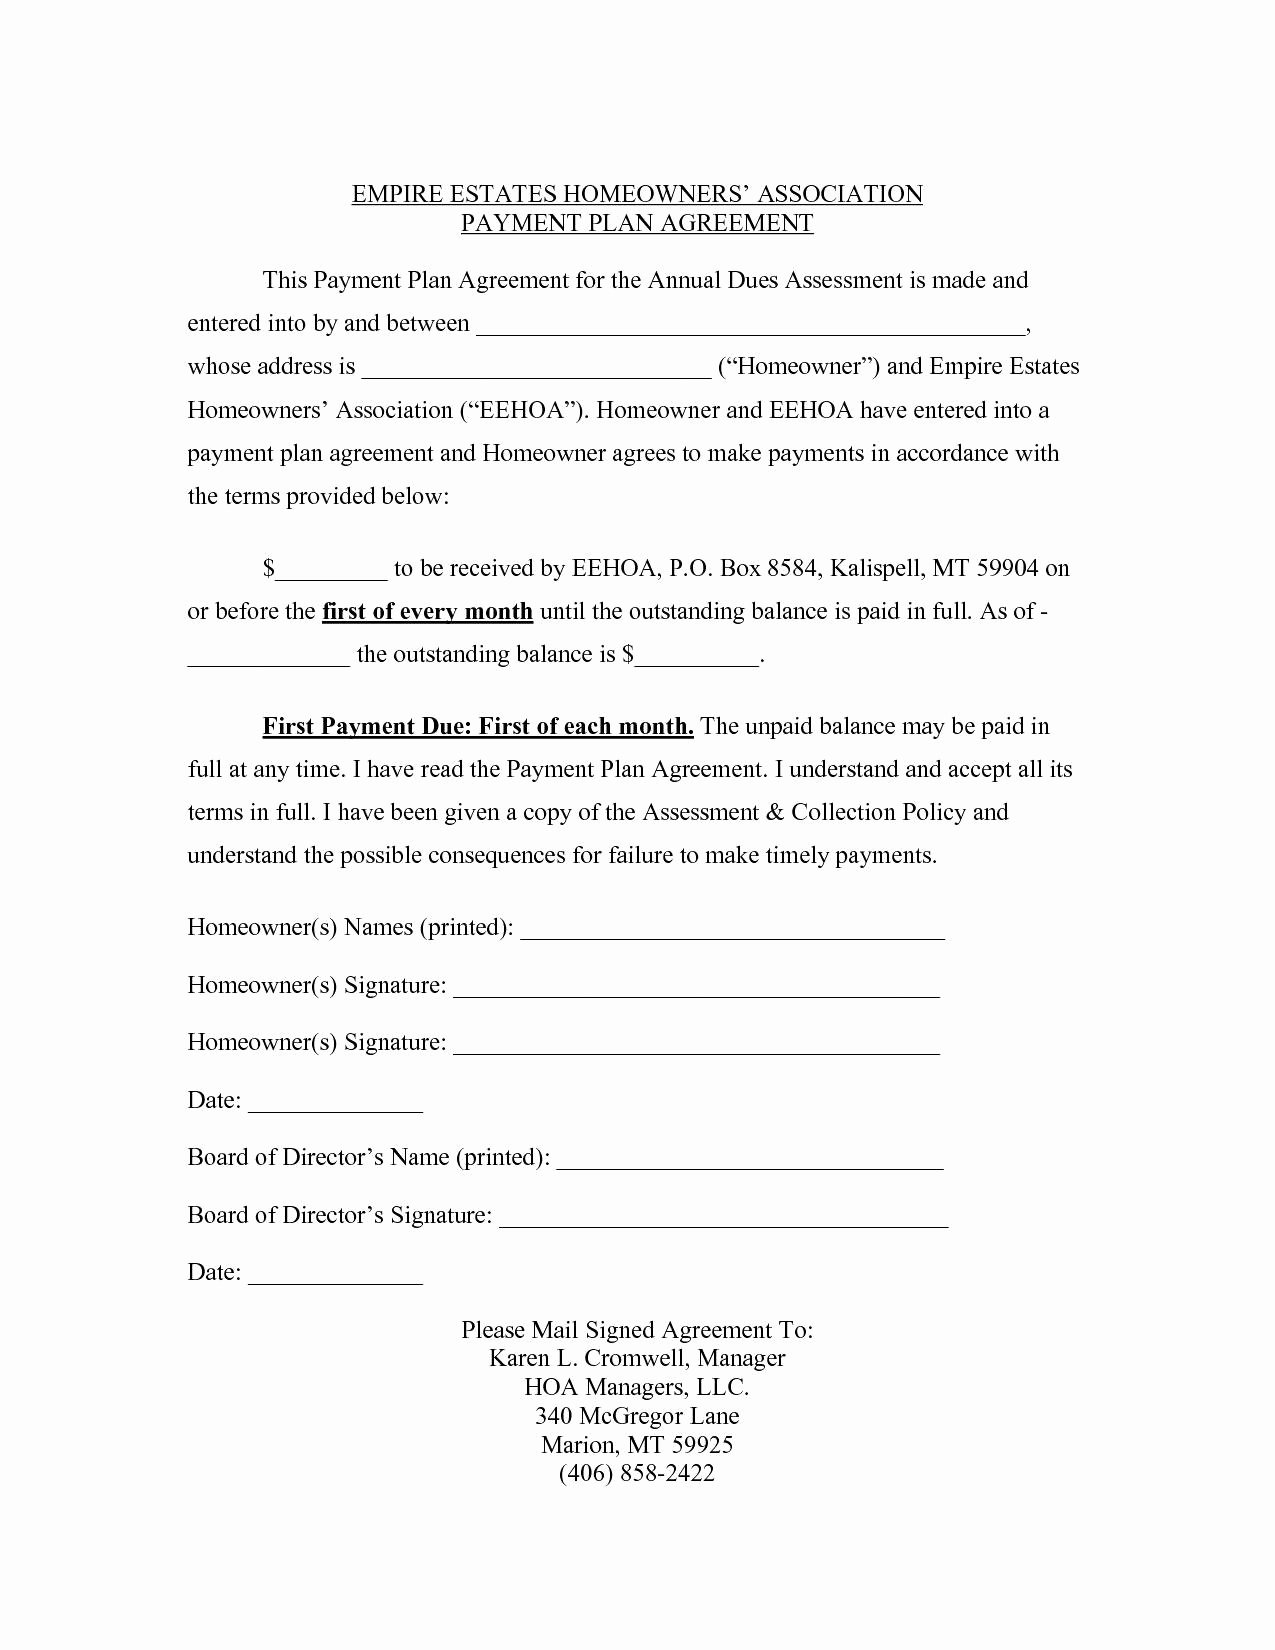 Air force Position Paper Template Luxury Full and Final Settlement Letter Template Car Accident